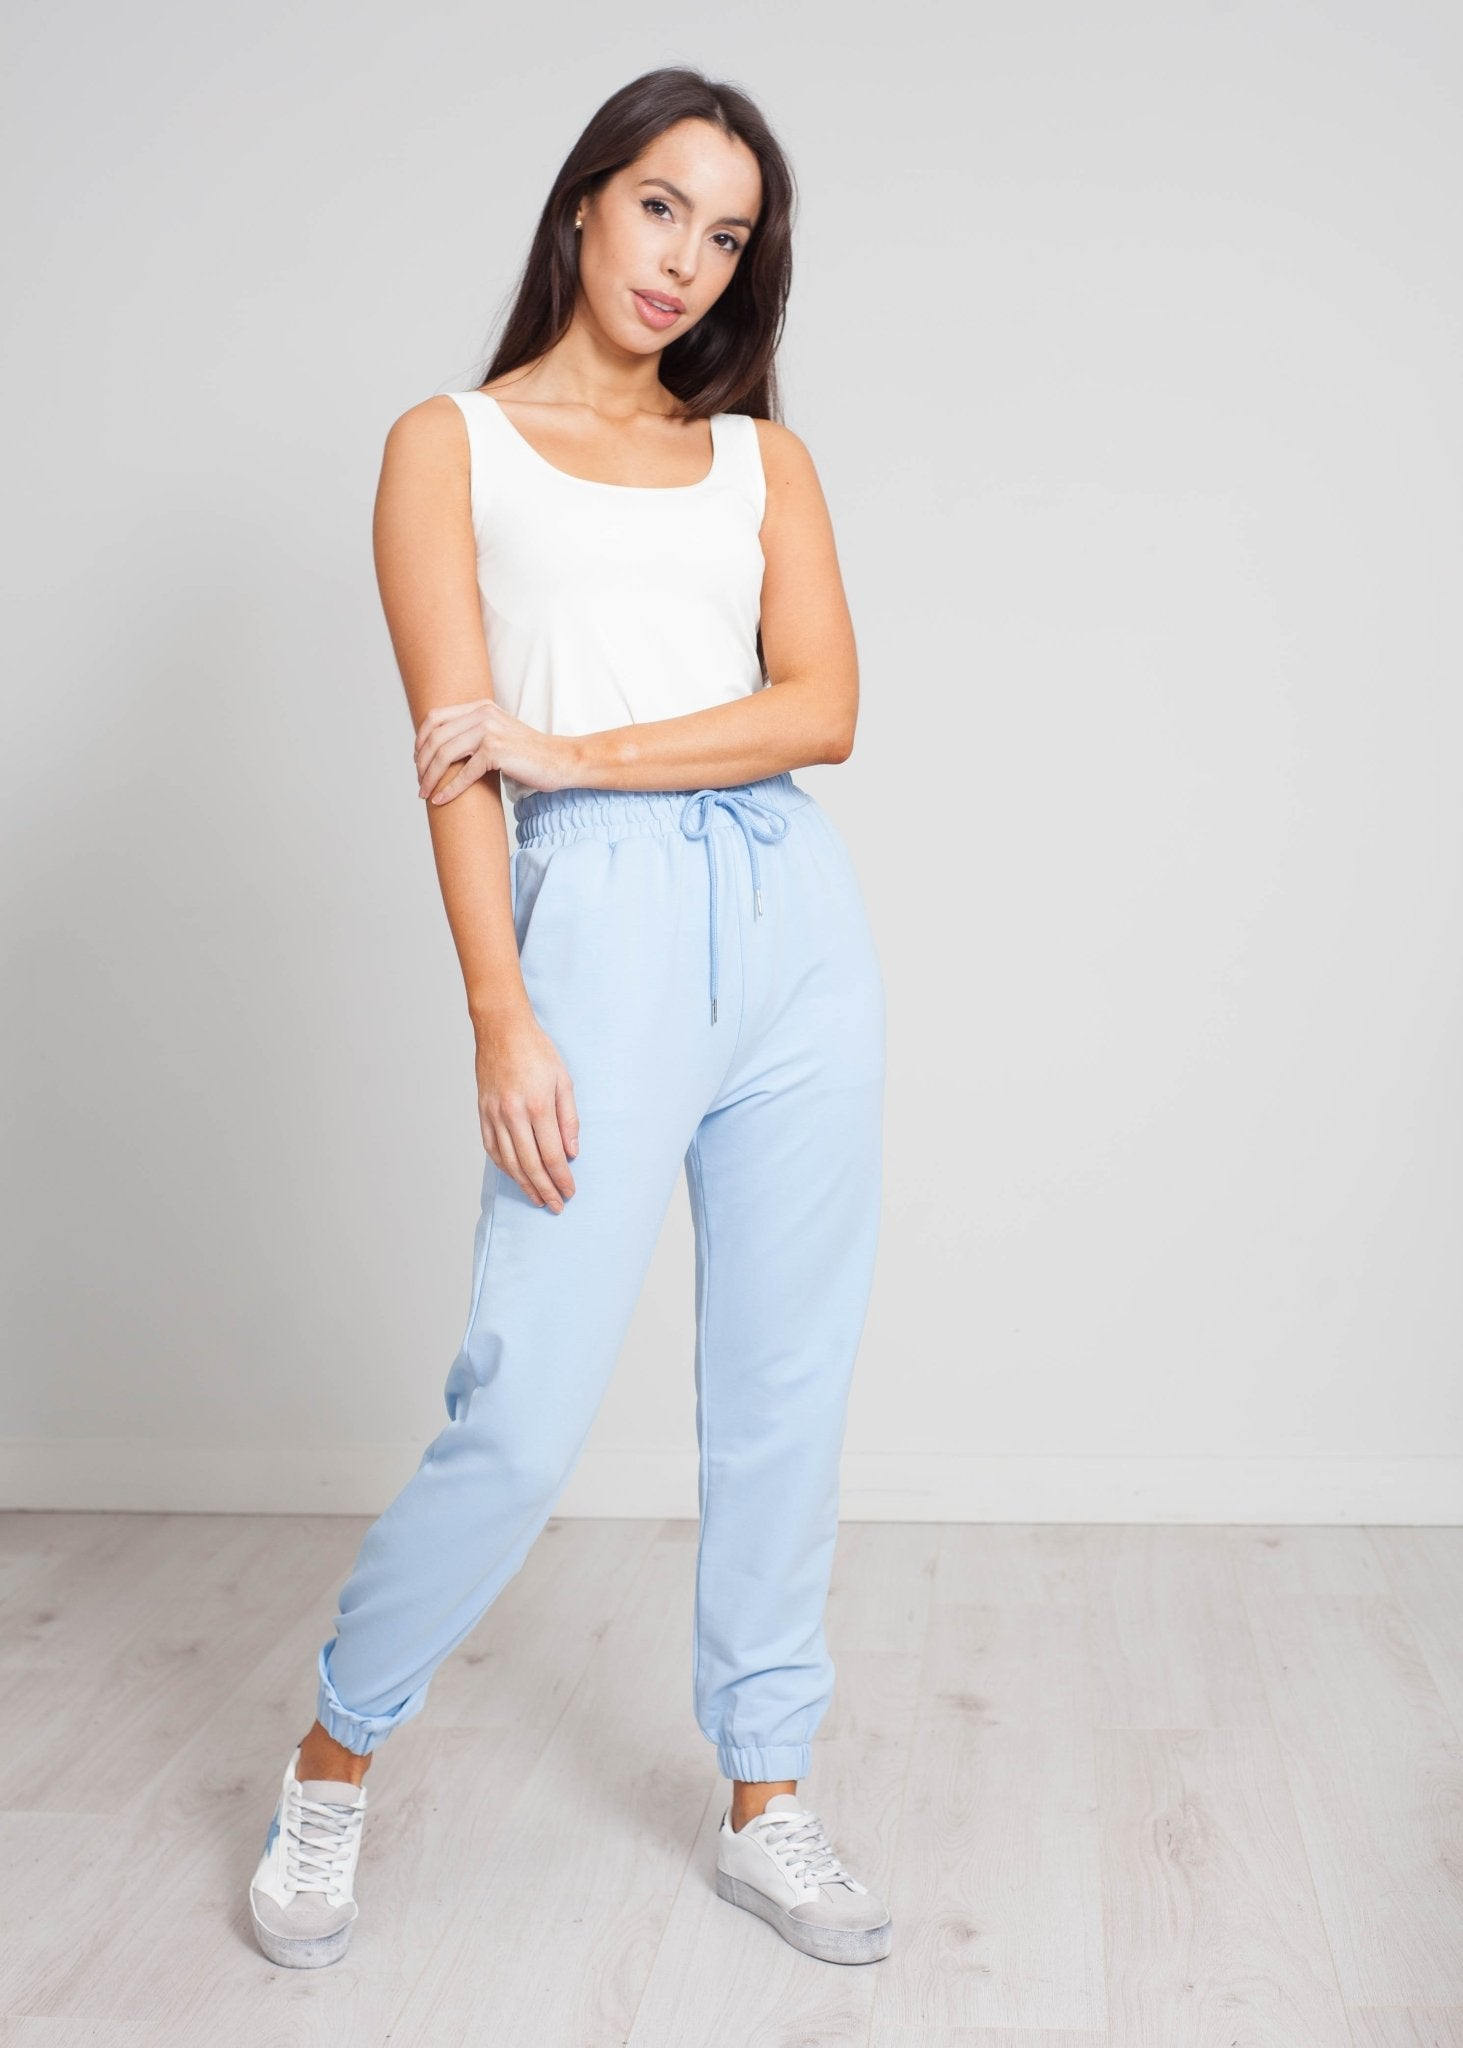 Scarlet Joggers In Blue - The Walk in Wardrobe